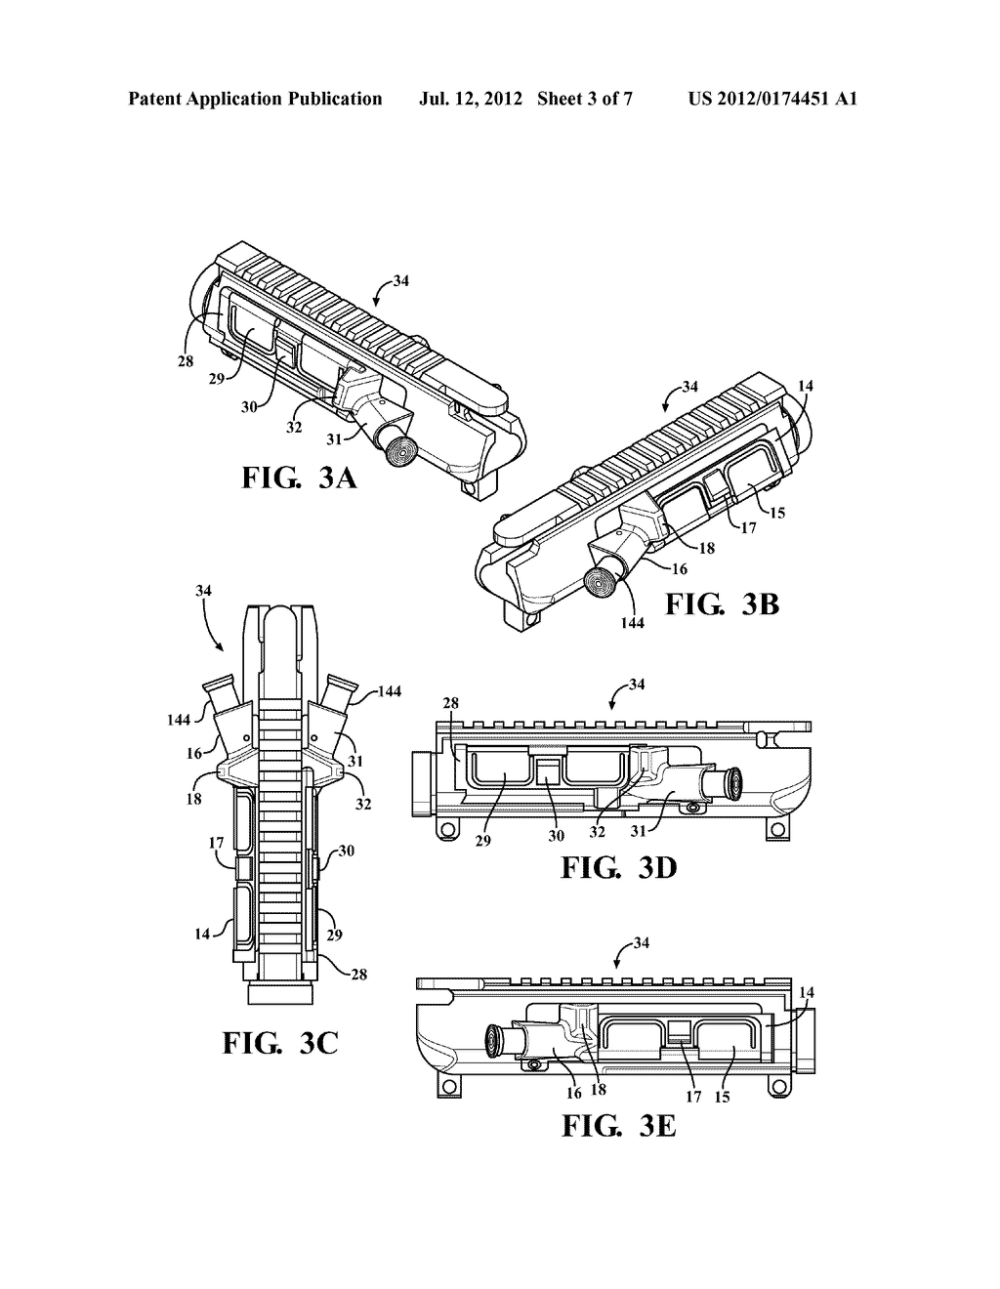 medium resolution of modifiable upper receiver for m 16 ar15 type firearm in particular for adapting to specific needs of right and left handed shooters diagram schematic